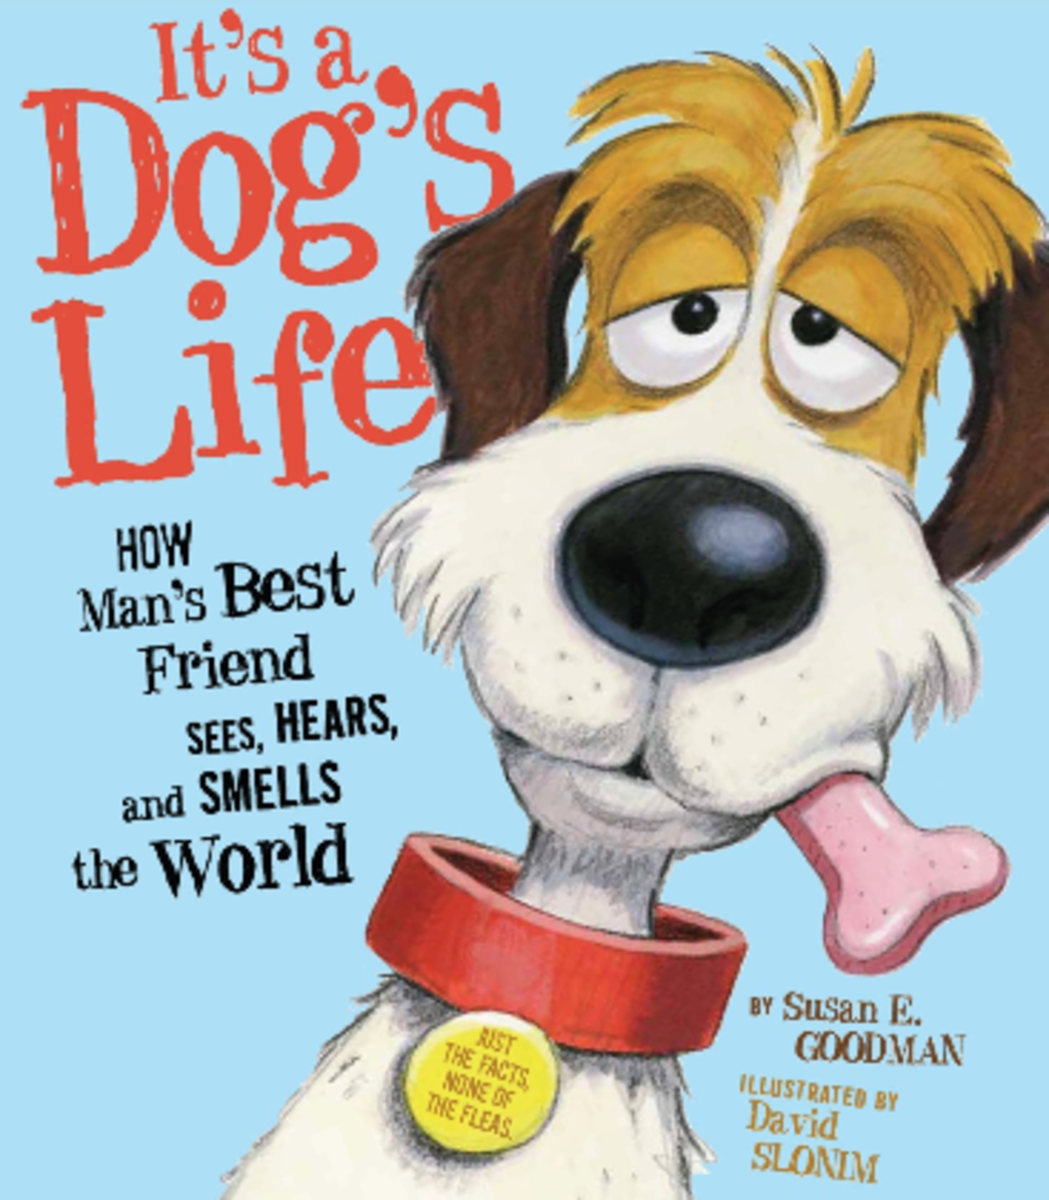 its-a-dogs-life-book-cover